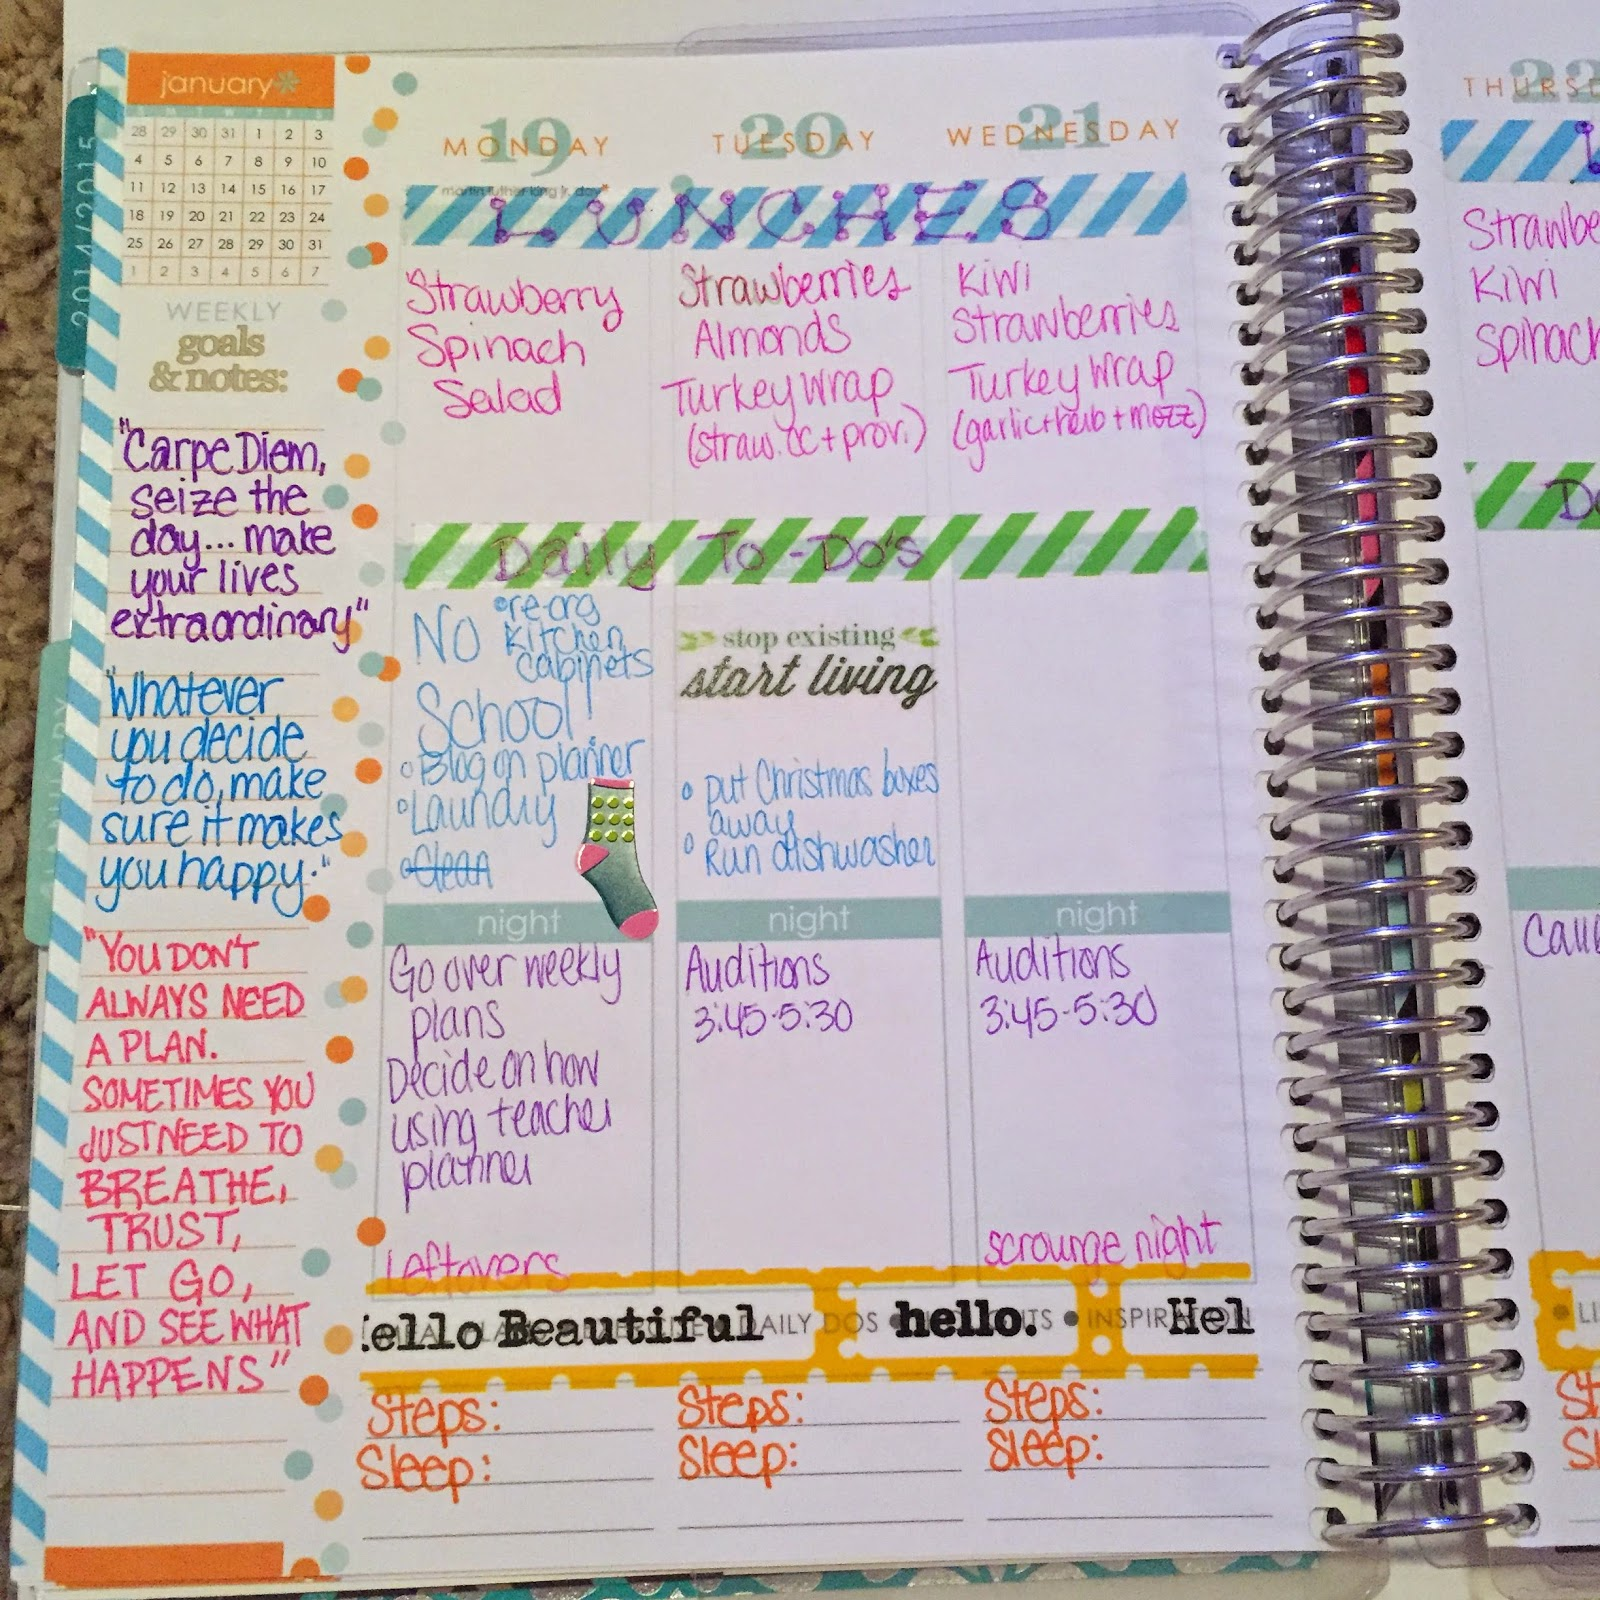 Teaching Teens in the 21st: The Life Planner